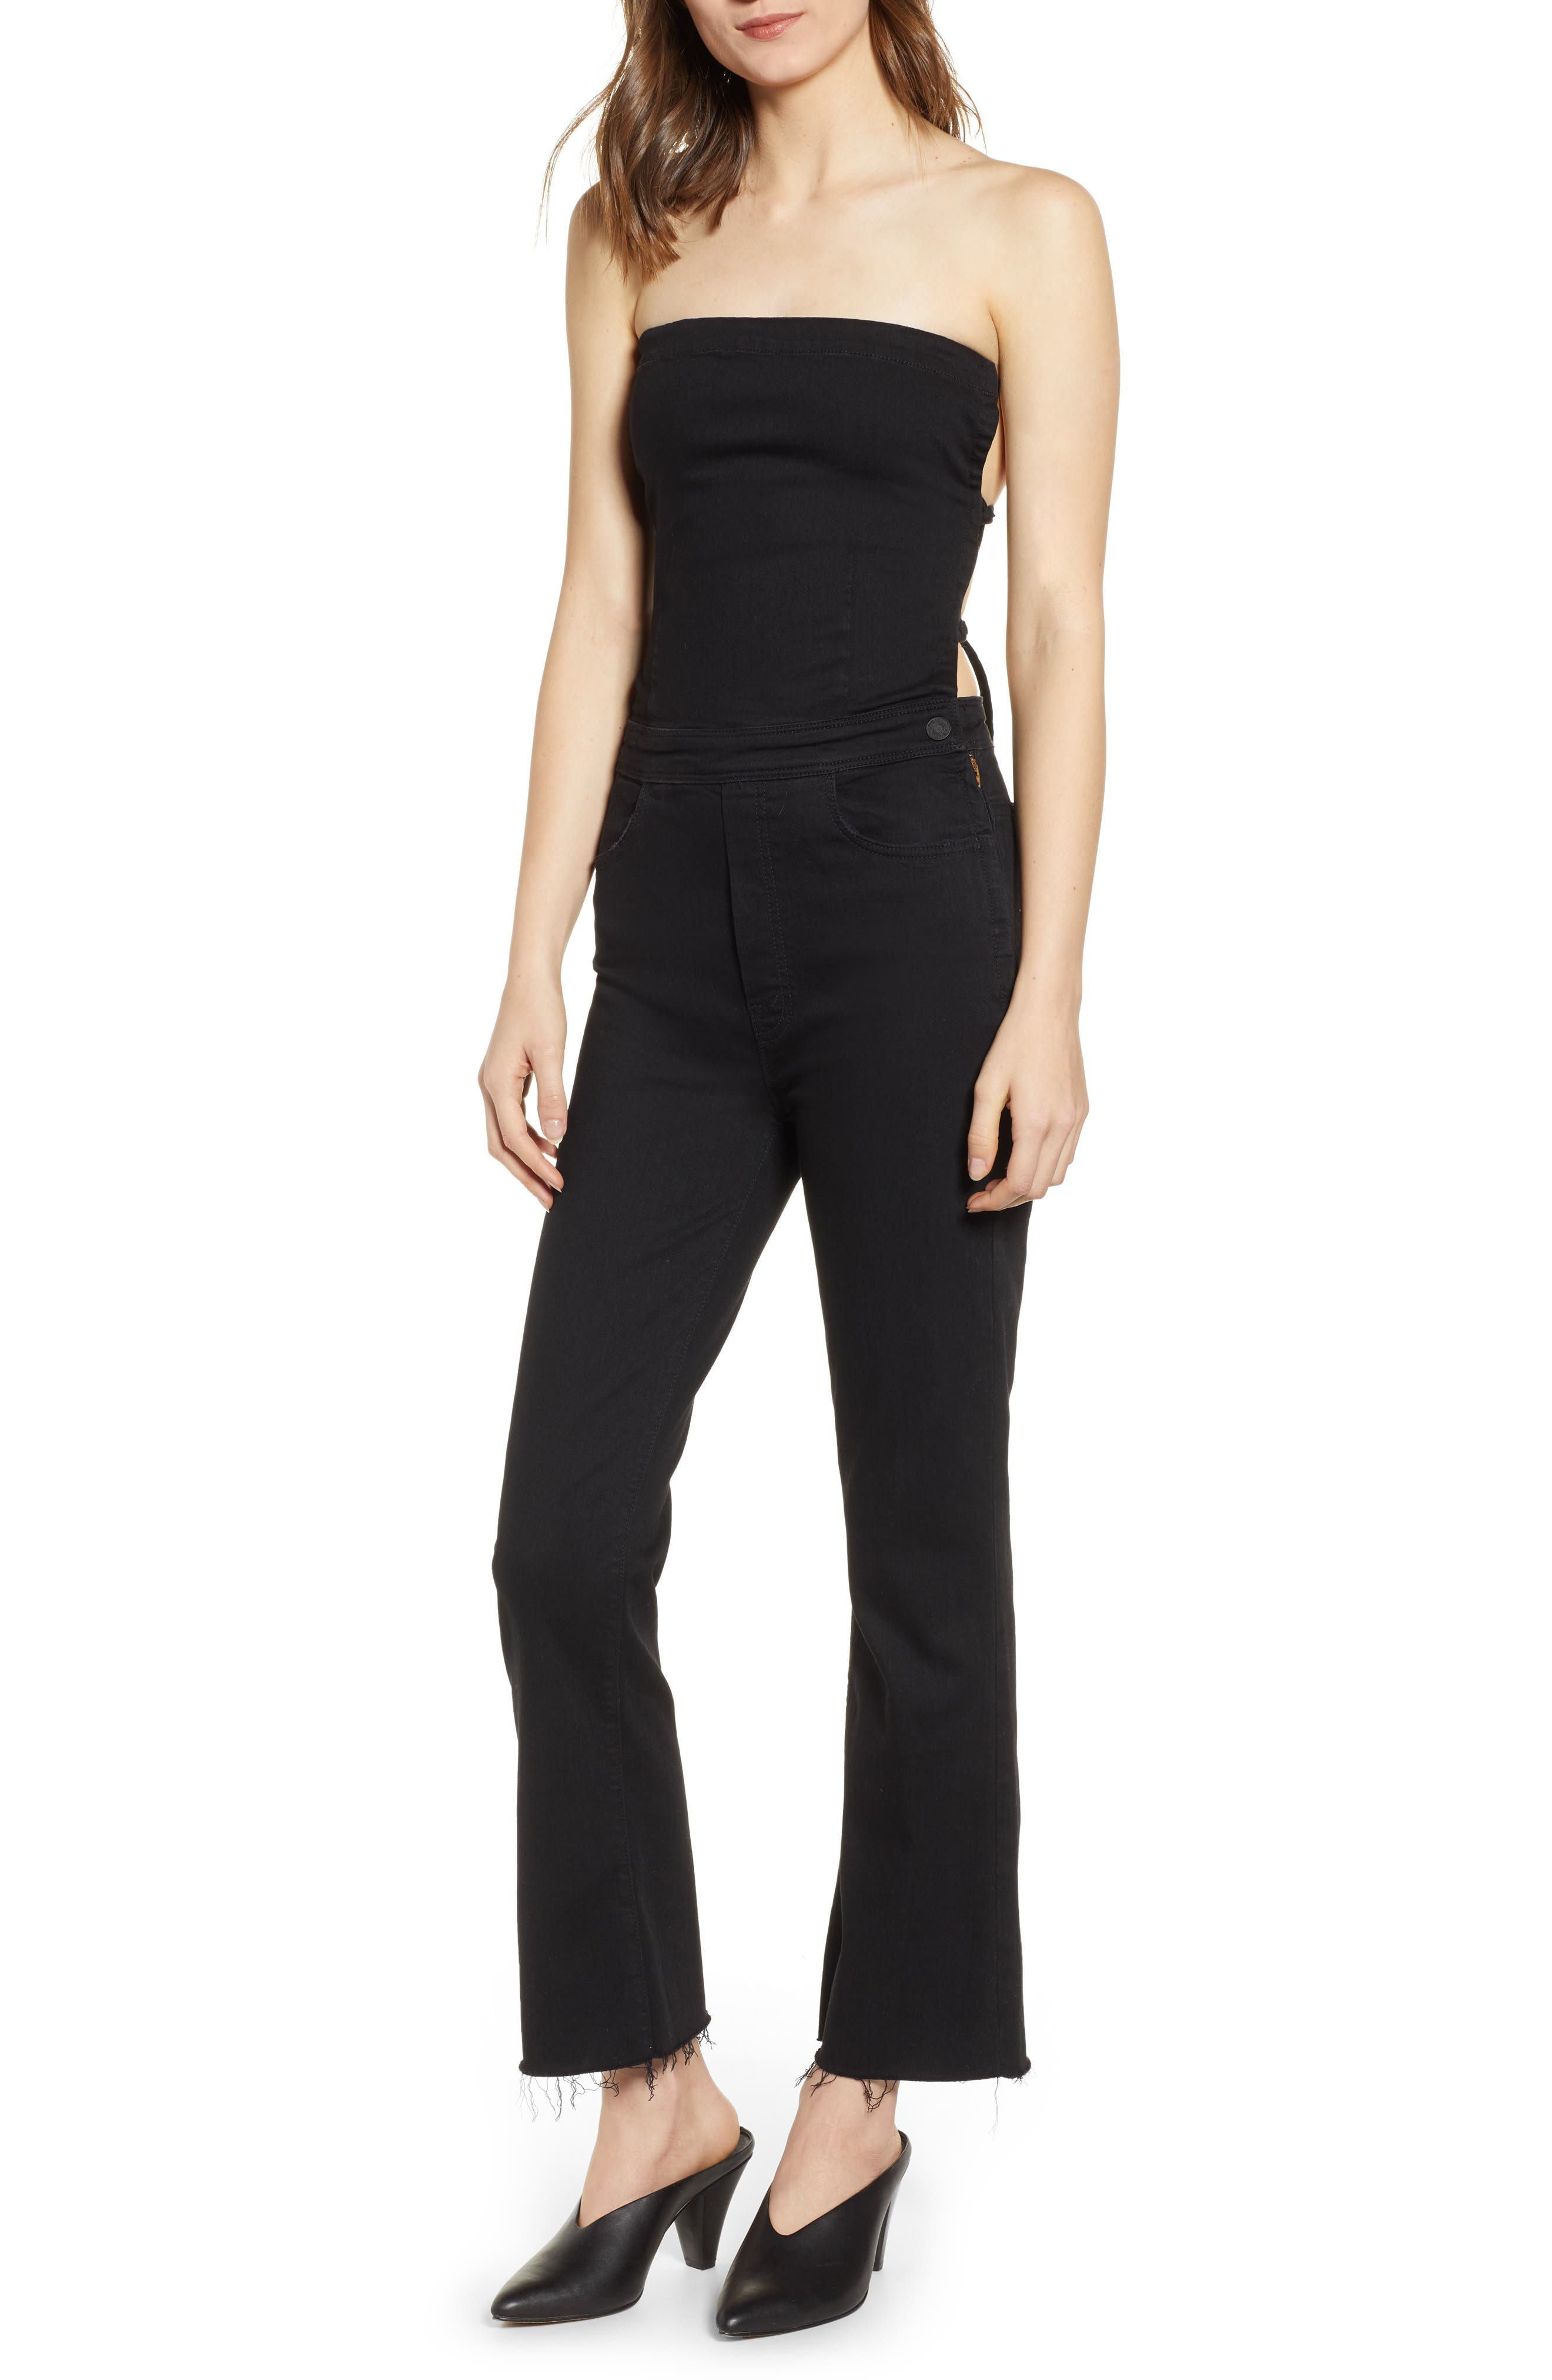 MOTHER, The Tie Back Hustler Ankle Fray Jumpsuit, Main thumbnail 1, color, 001